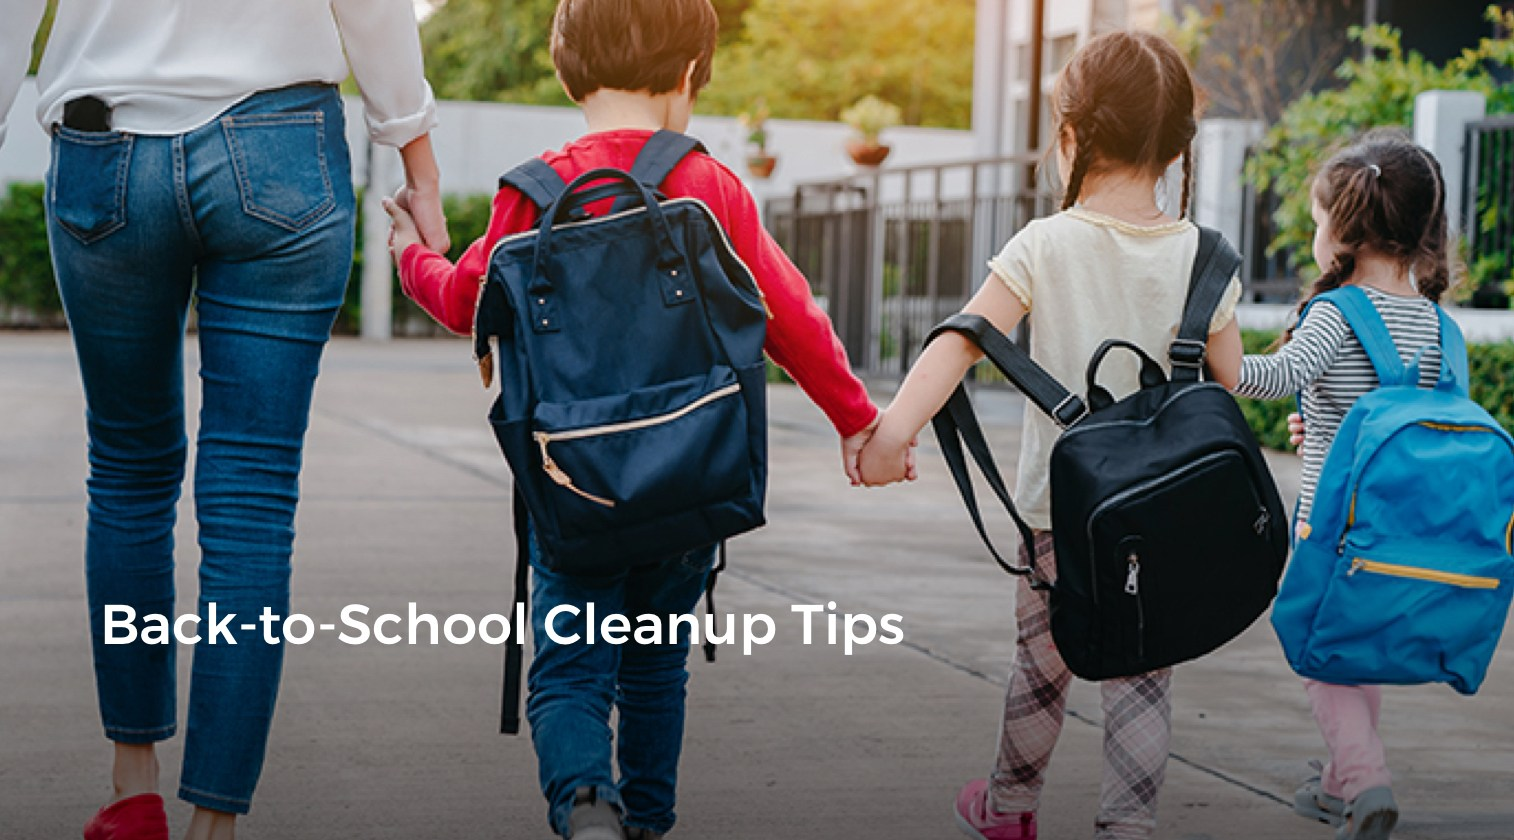 Back-to-School Cleanup Tips